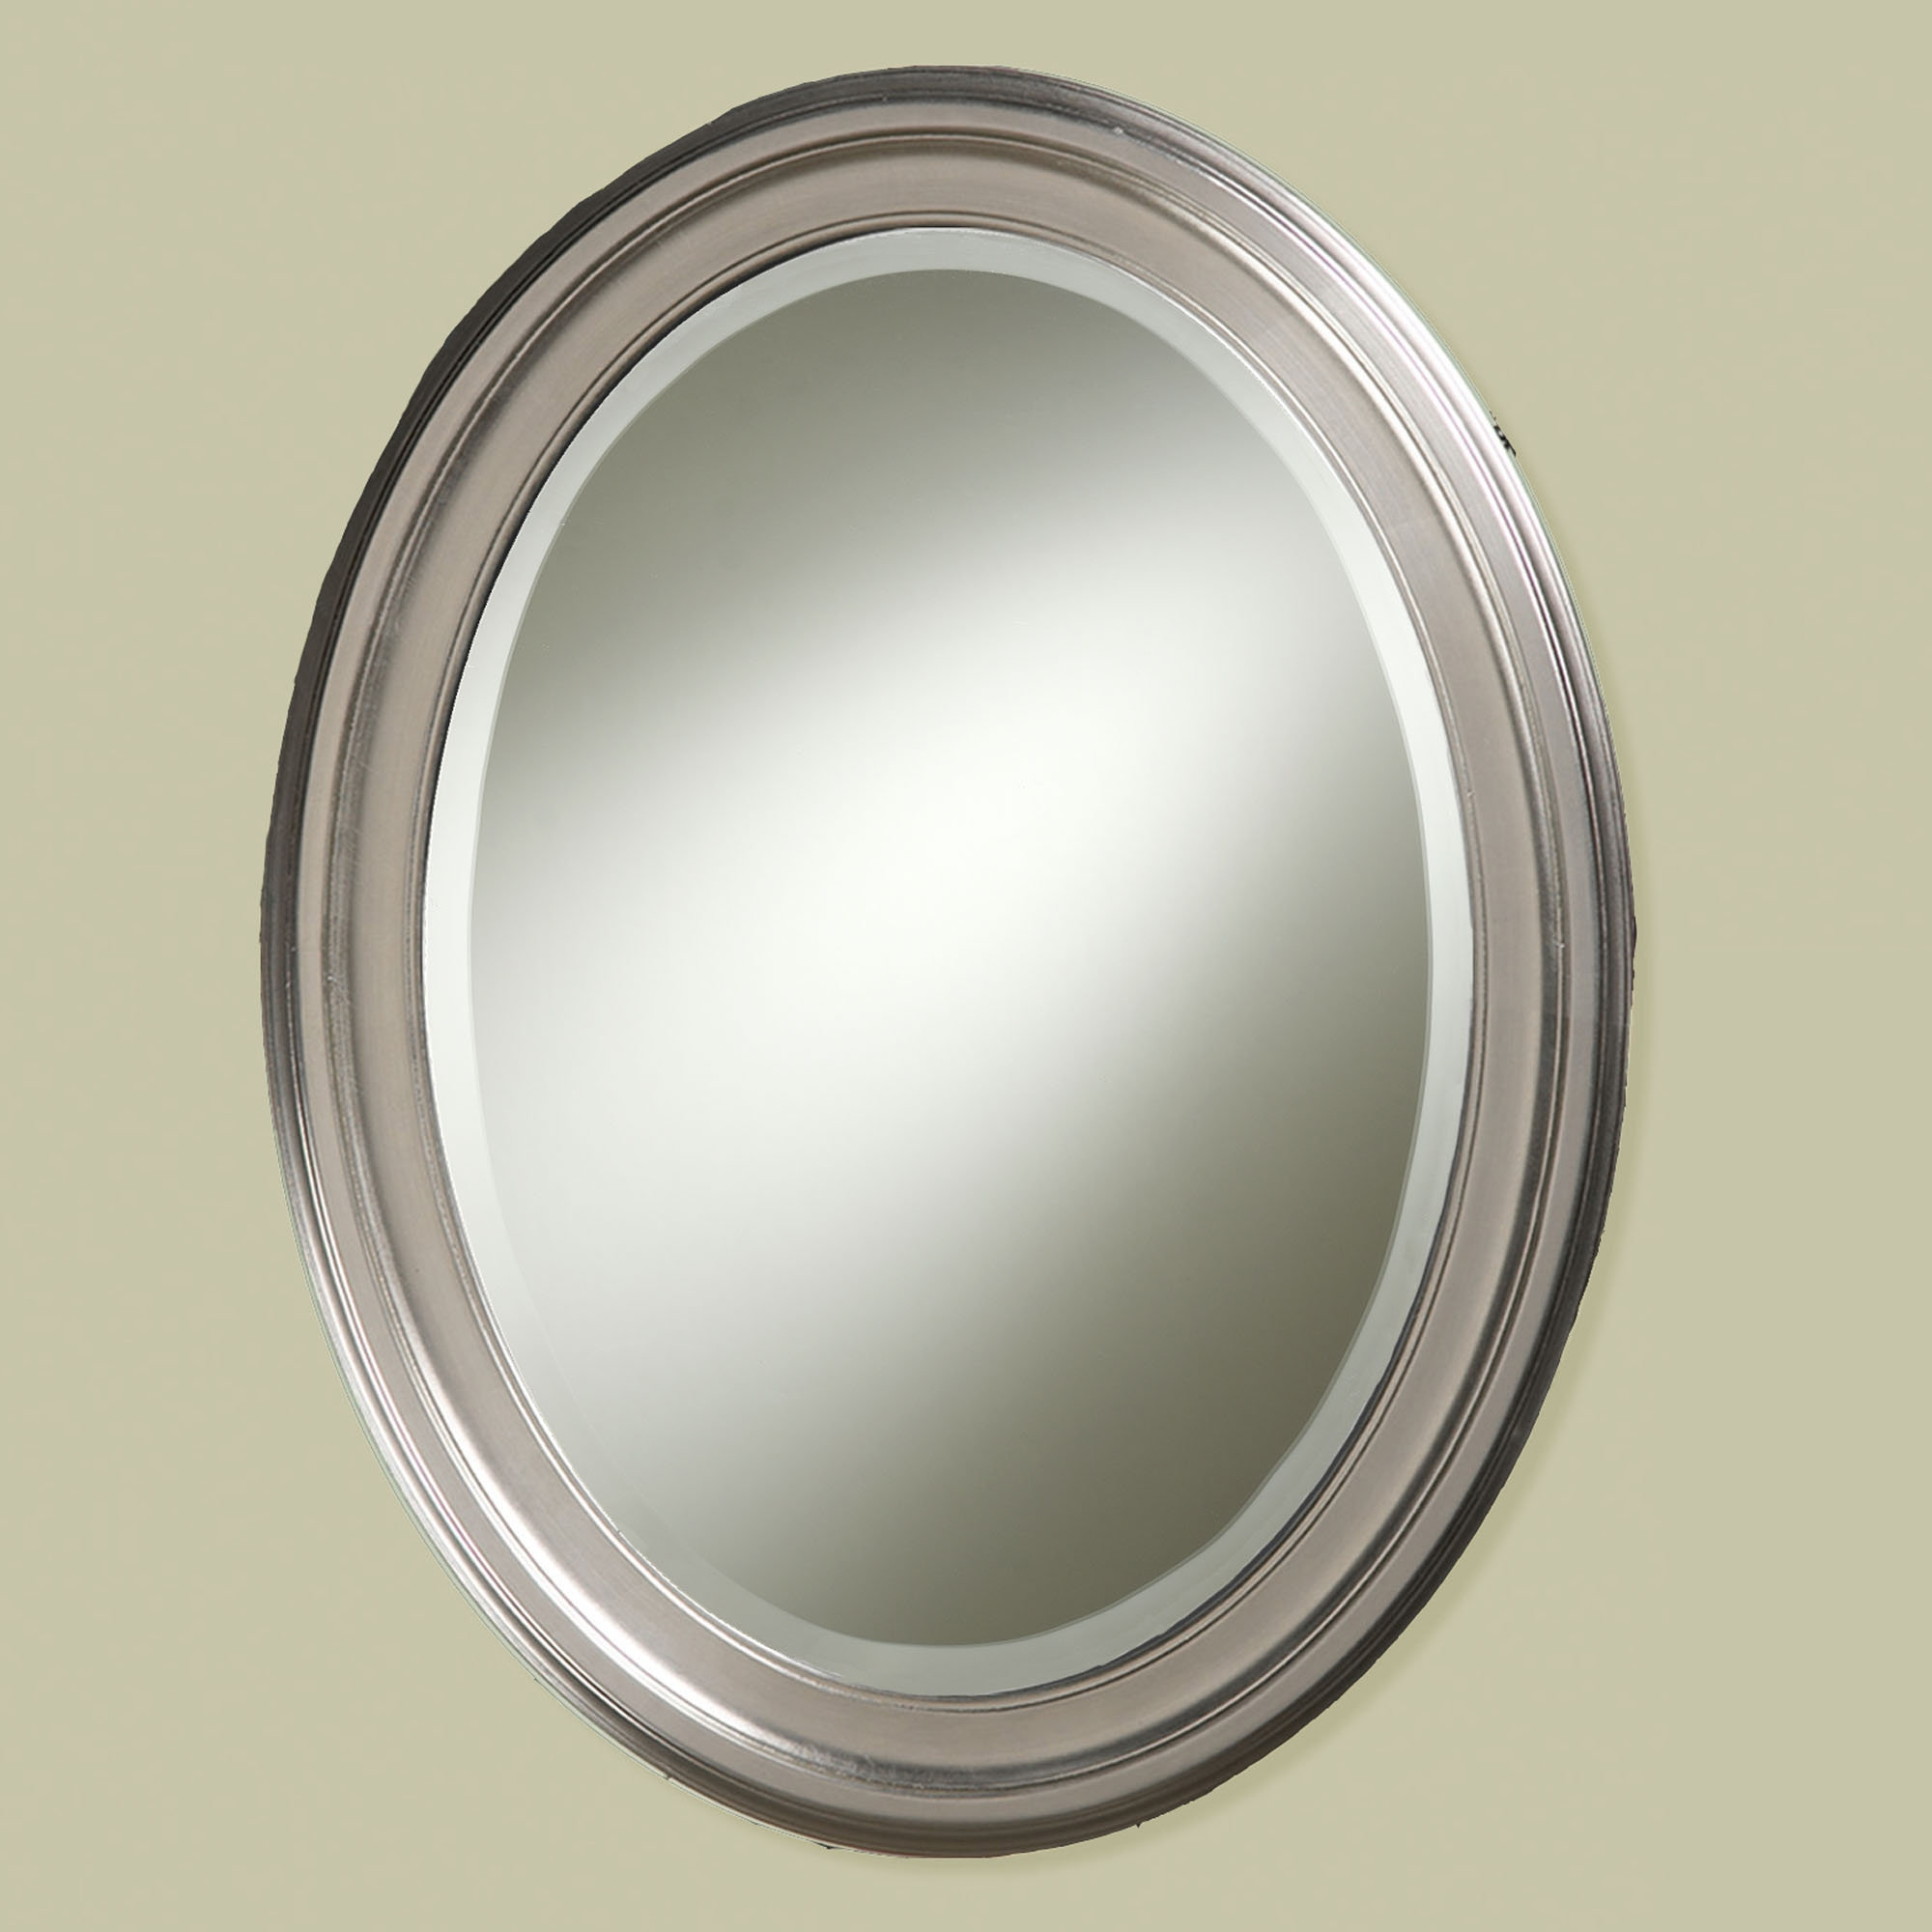 Oval Wall Mirrors Mirrors Uk With Stylish Loree Brushed Nickel For Oval Wall Mirrors (Image 10 of 15)